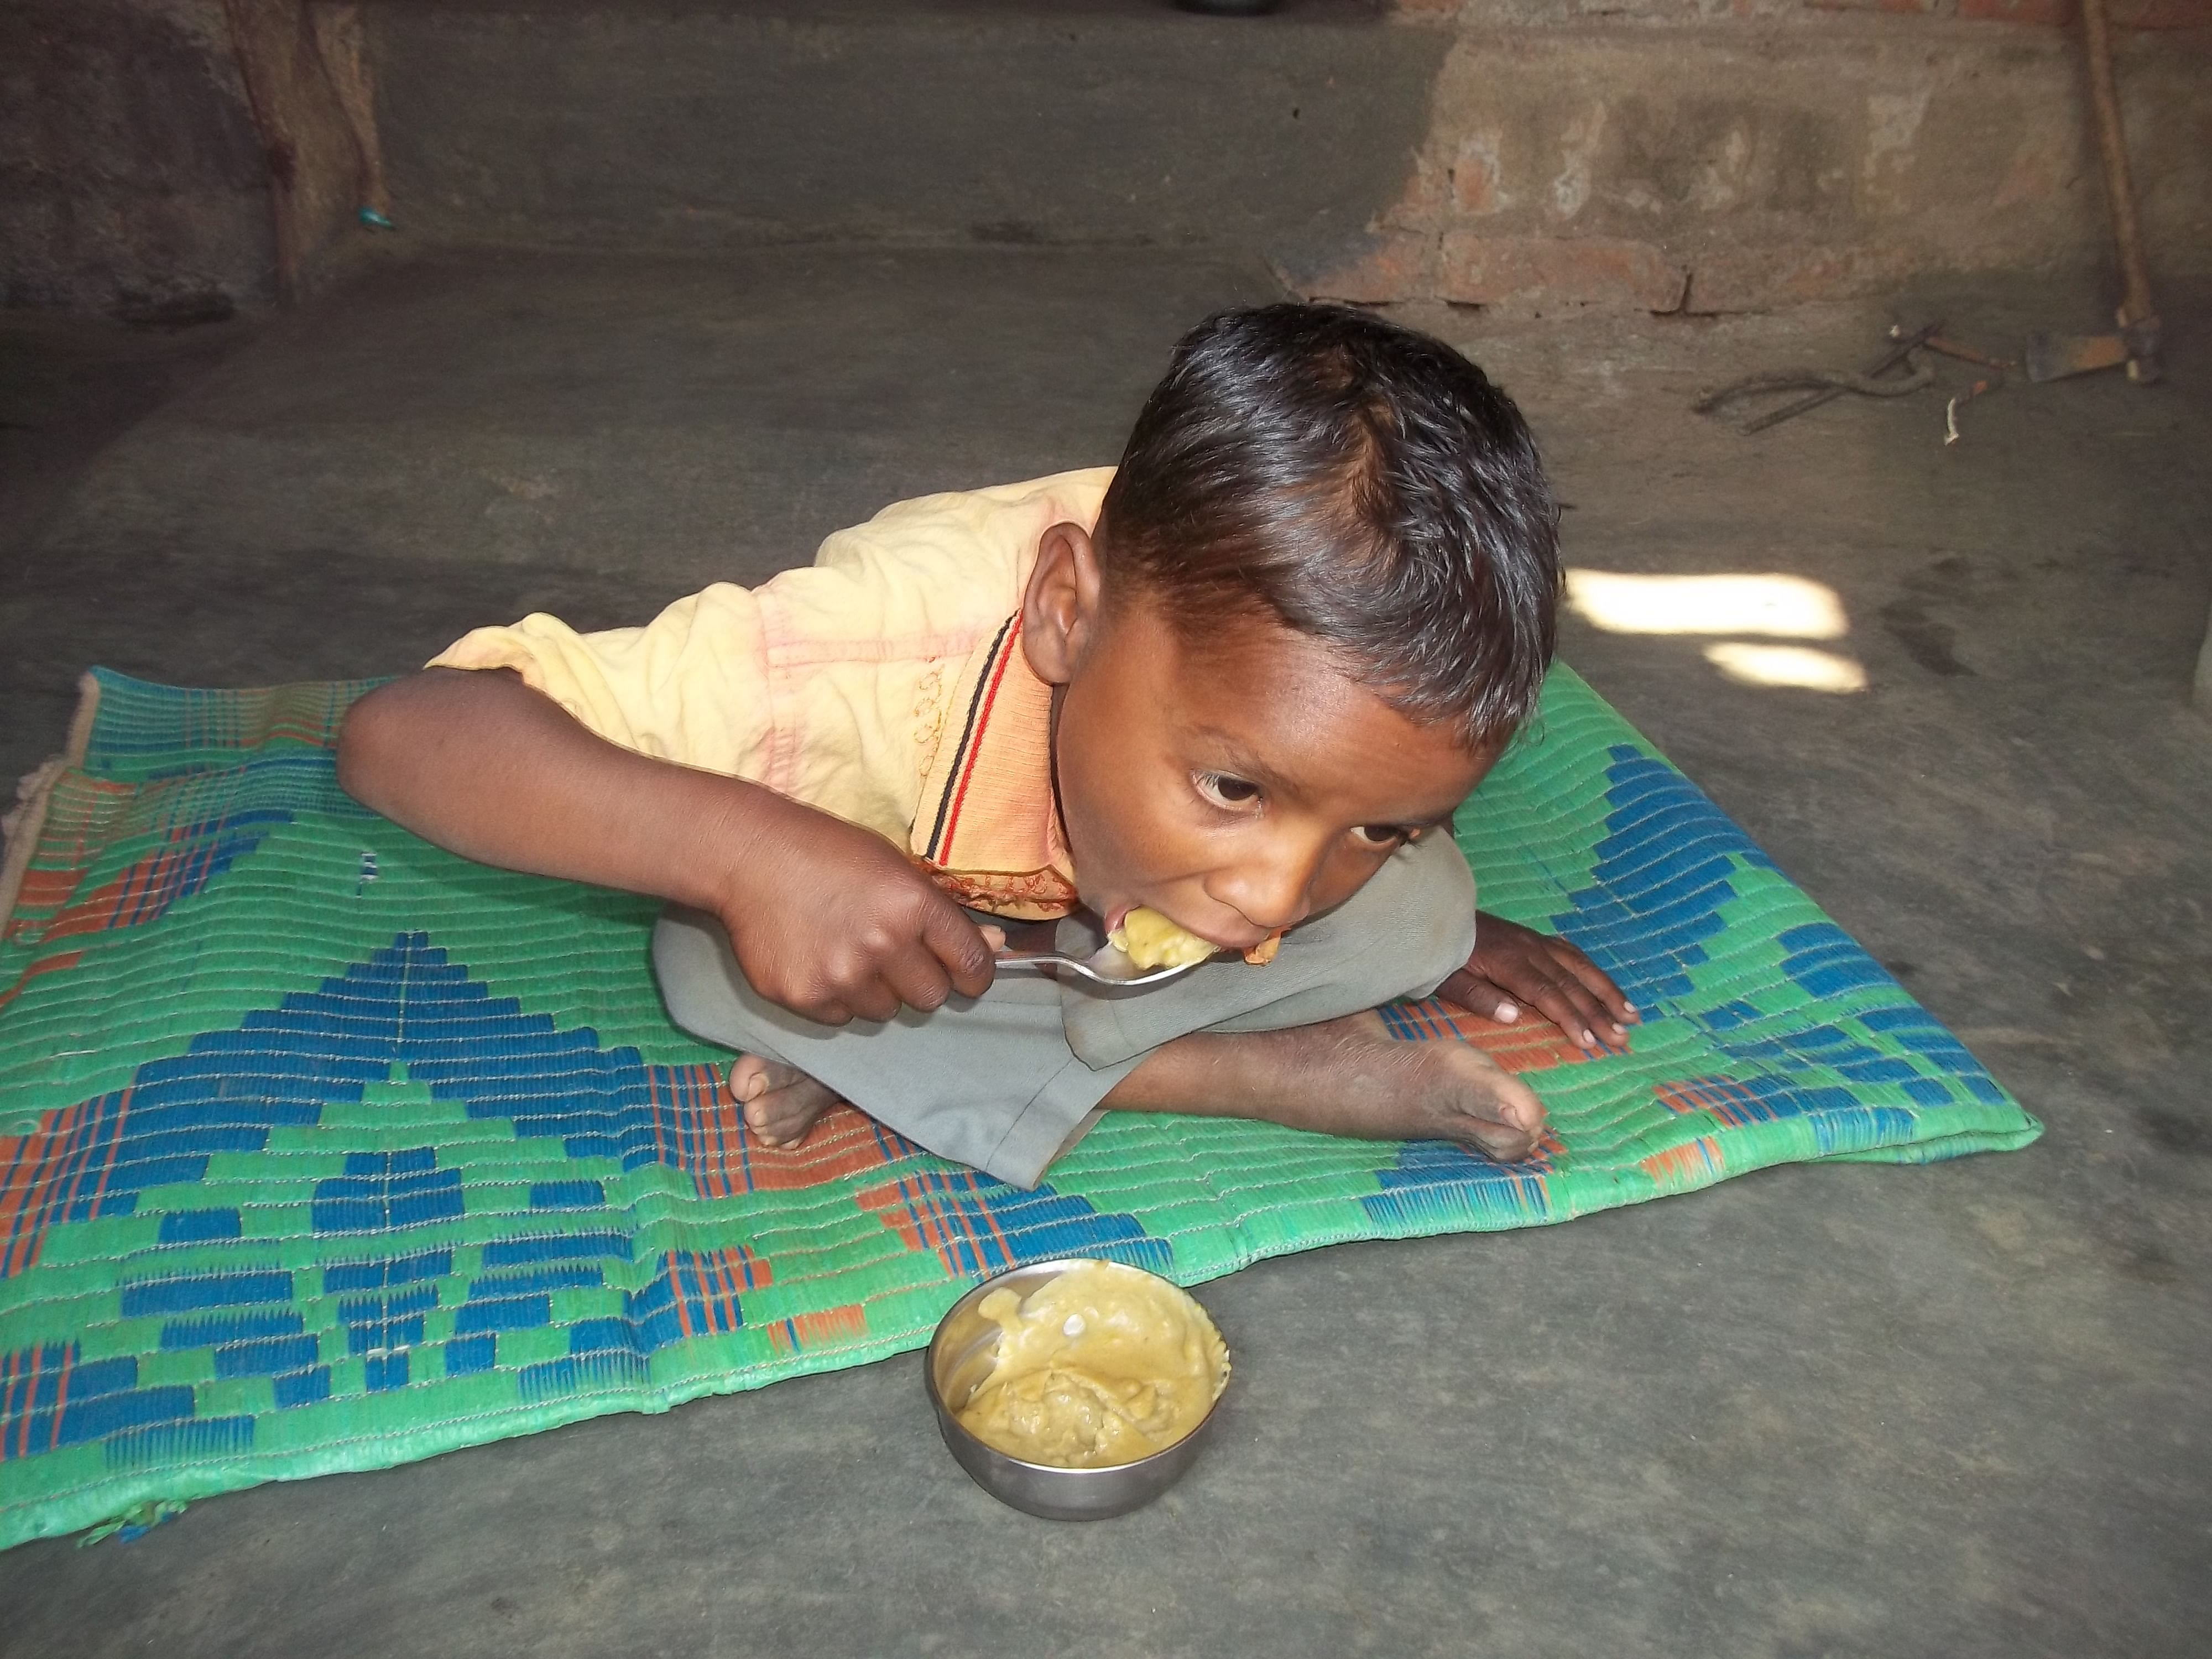 This is Pramod Majhi, whose mother Pramila ensures that she gives him 'tiranga bhojan' for every meal. Thanks to the sustained balanced input he has grown taller, his skin is clearer and his hair is black and thick. (Credit: Saadia Azim\WFS)